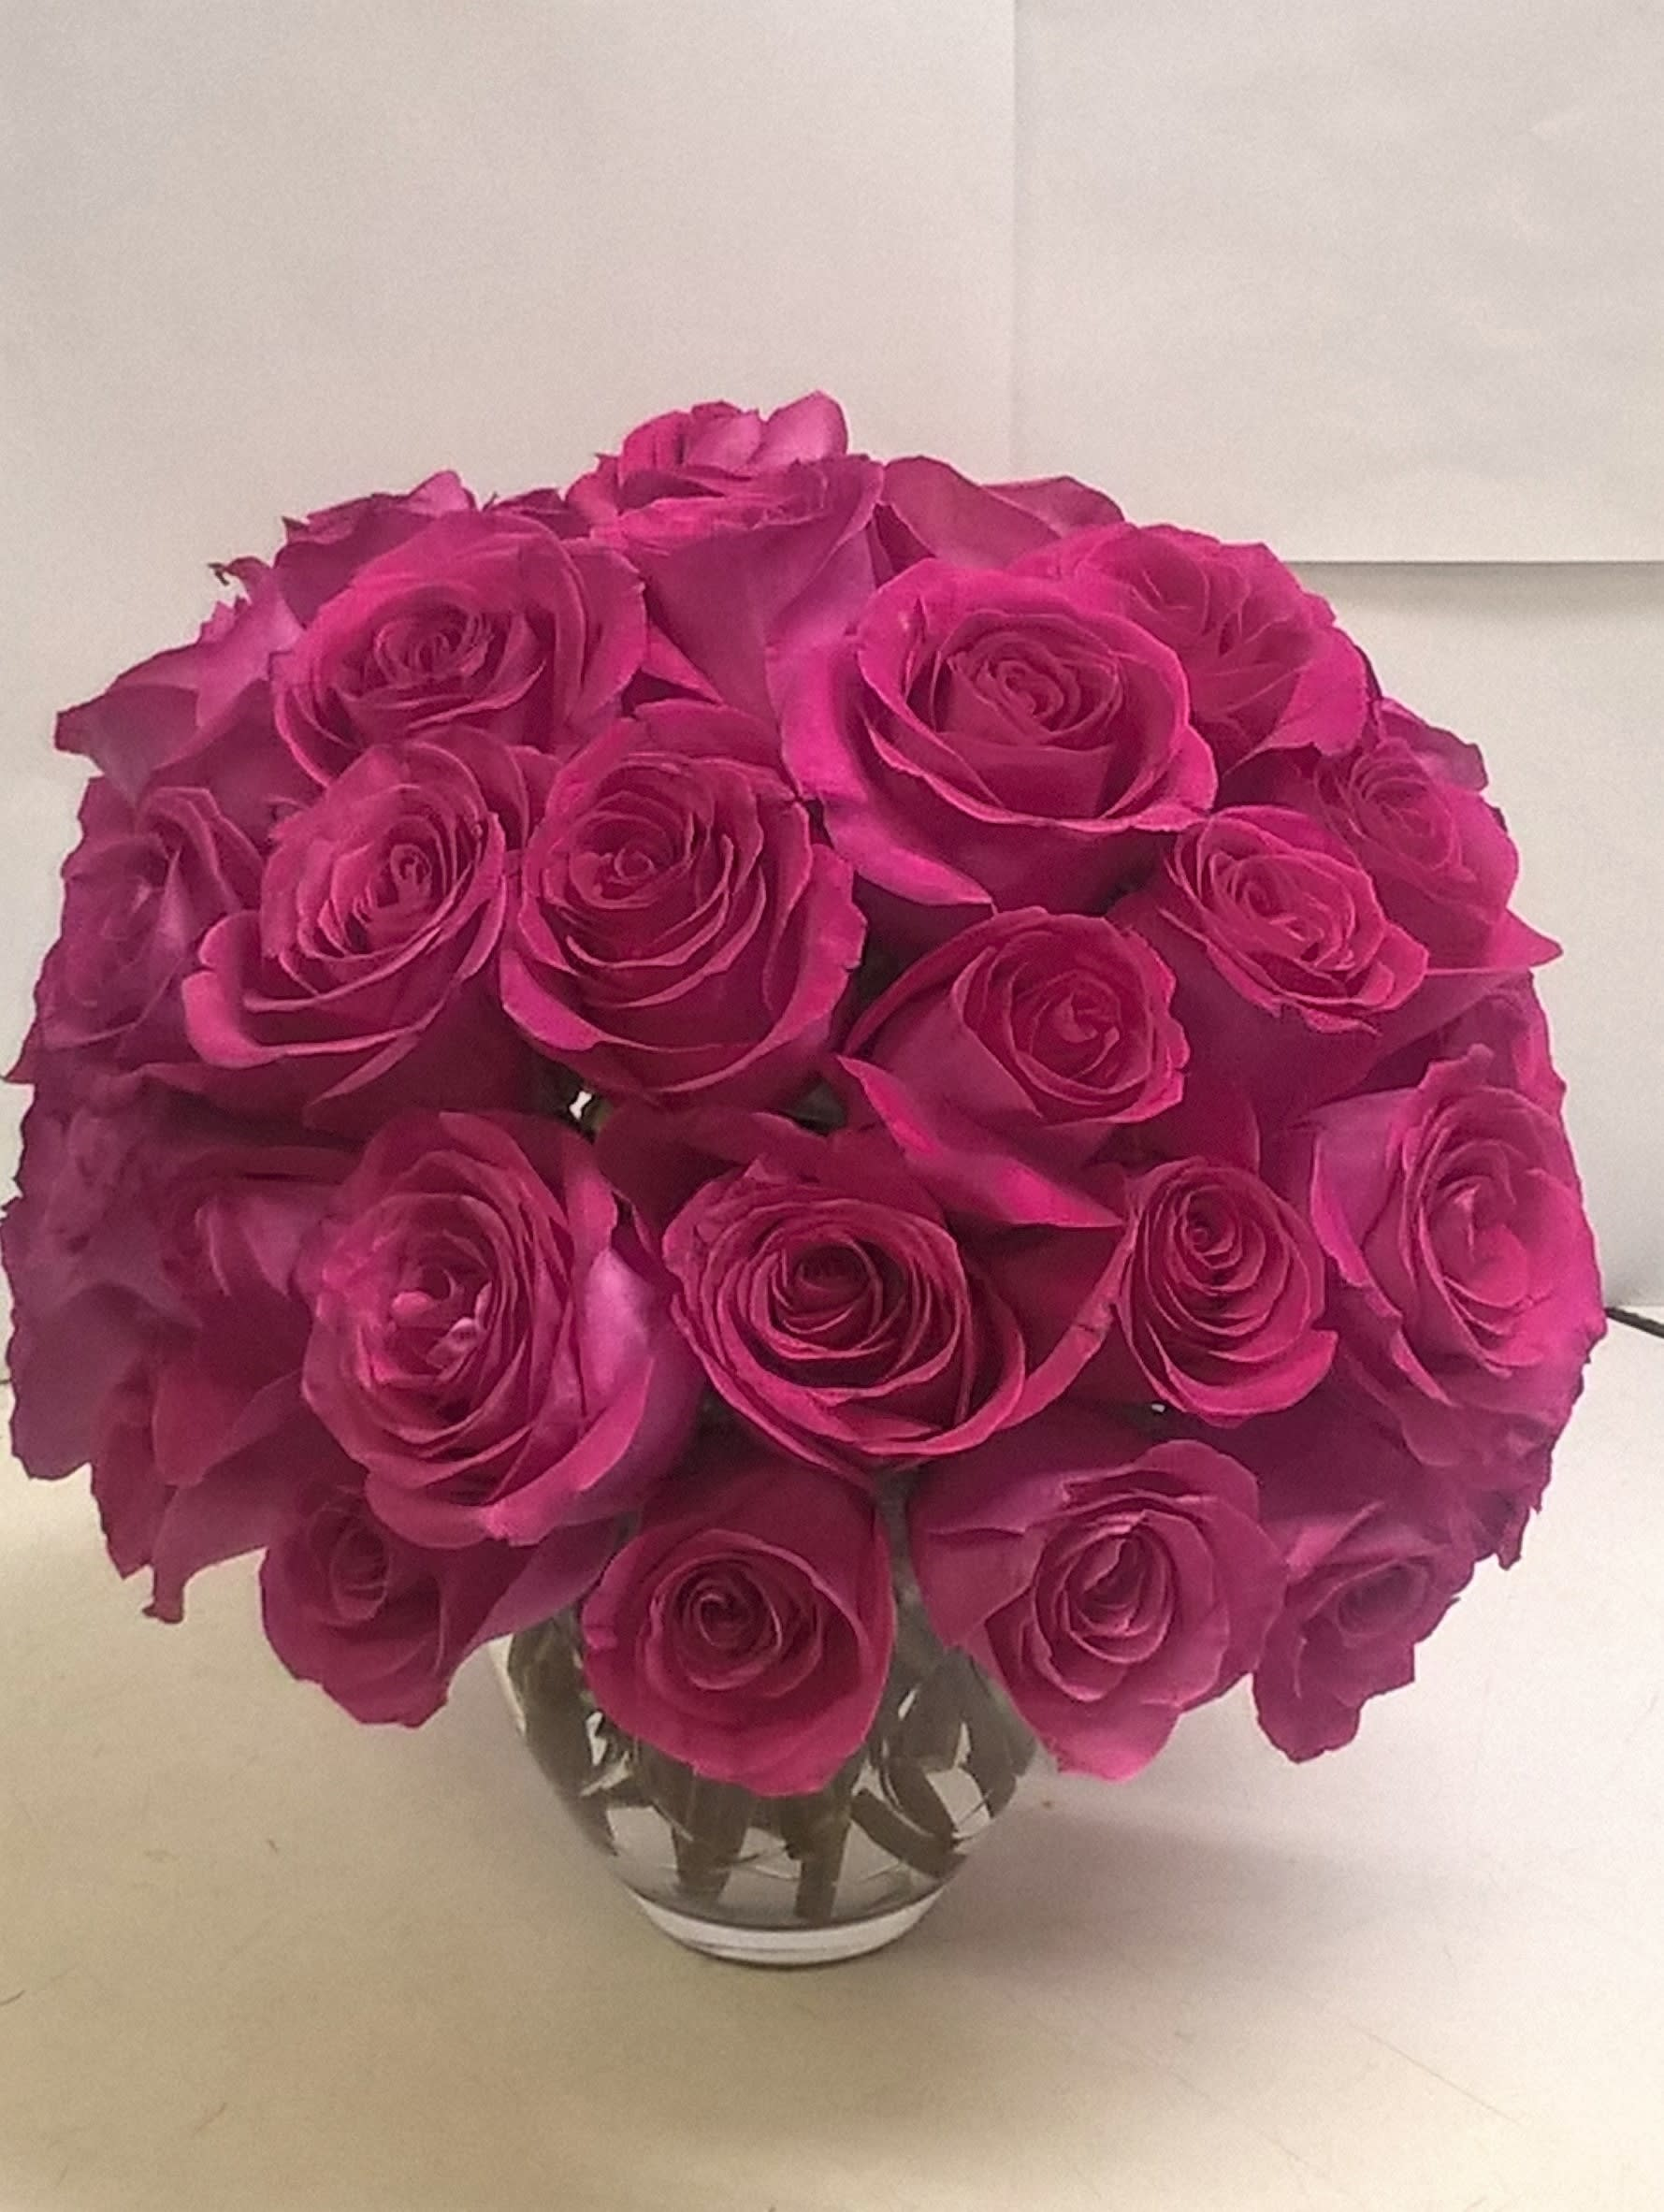 About floral insight hours delivery in houston tx choice florist of houston we are dedicated to ensuring complete customer satisfaction for new and returning customers alike no matter the occasion izmirmasajfo